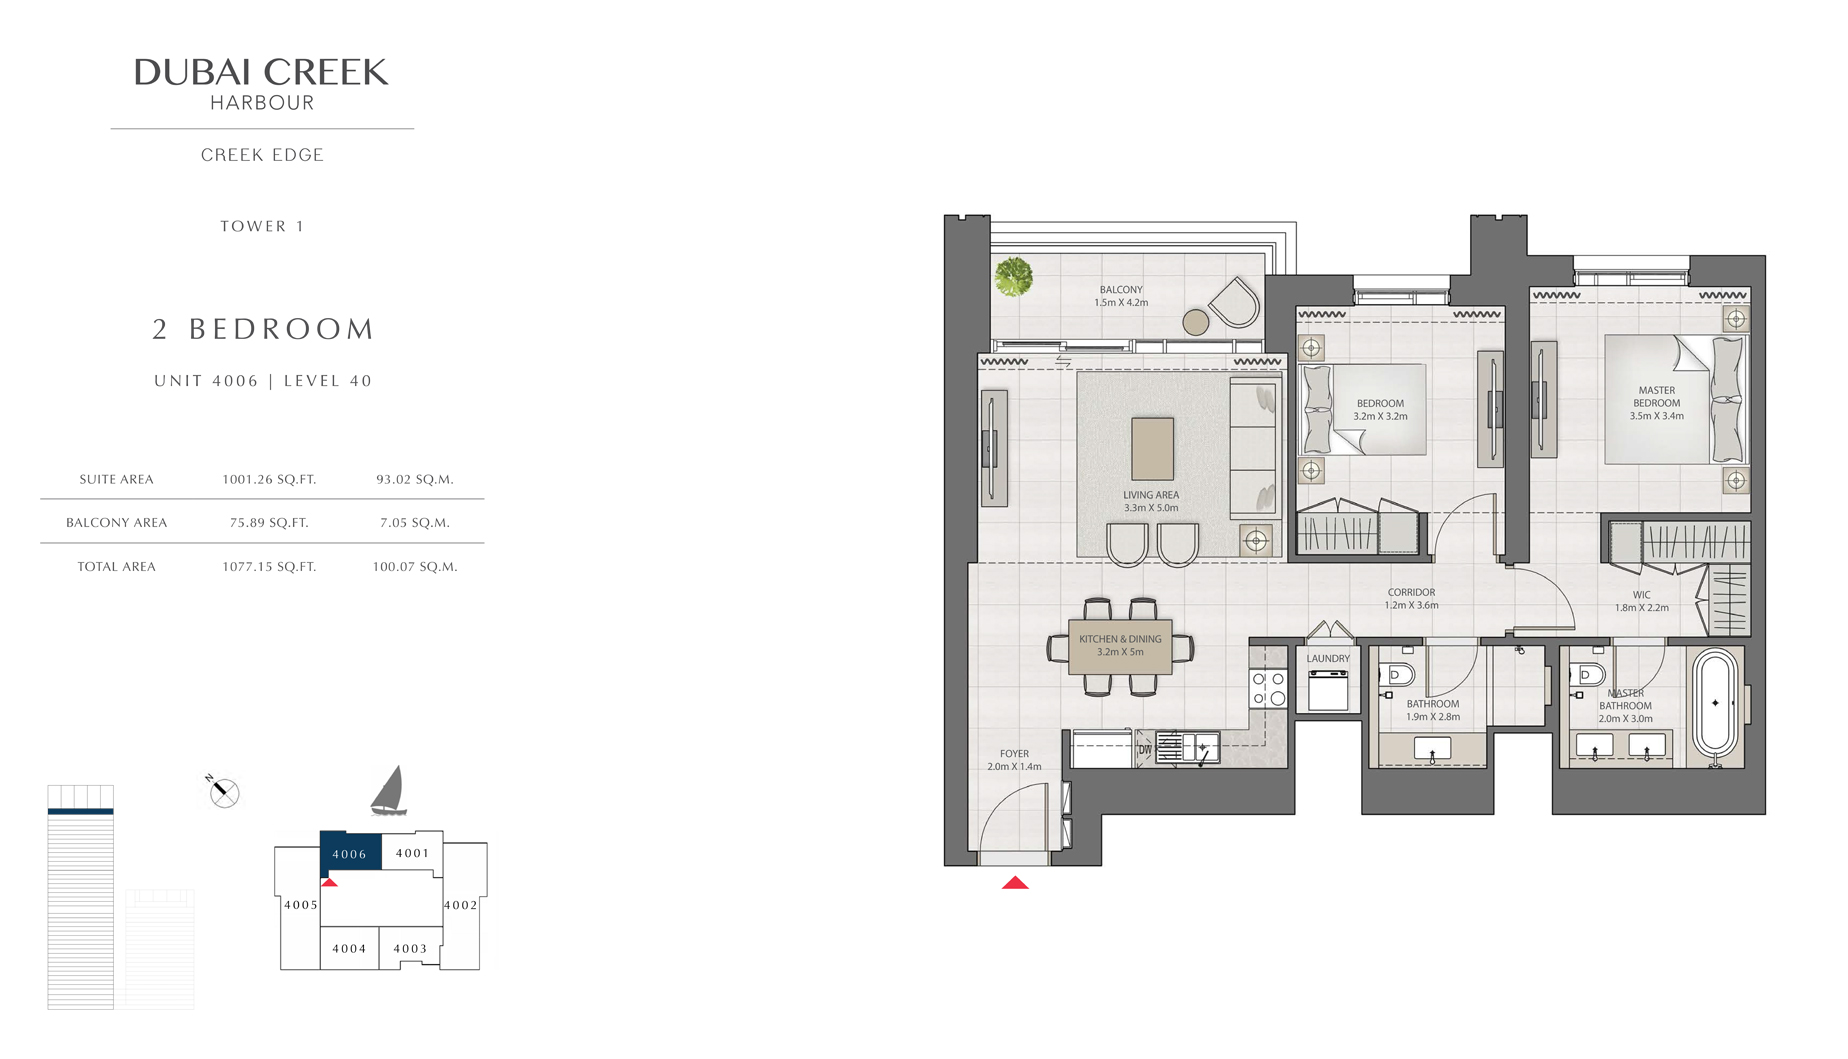 2 Bedroom Tower 1 Unit 4006 Level 40 Size 1077 sq.ft